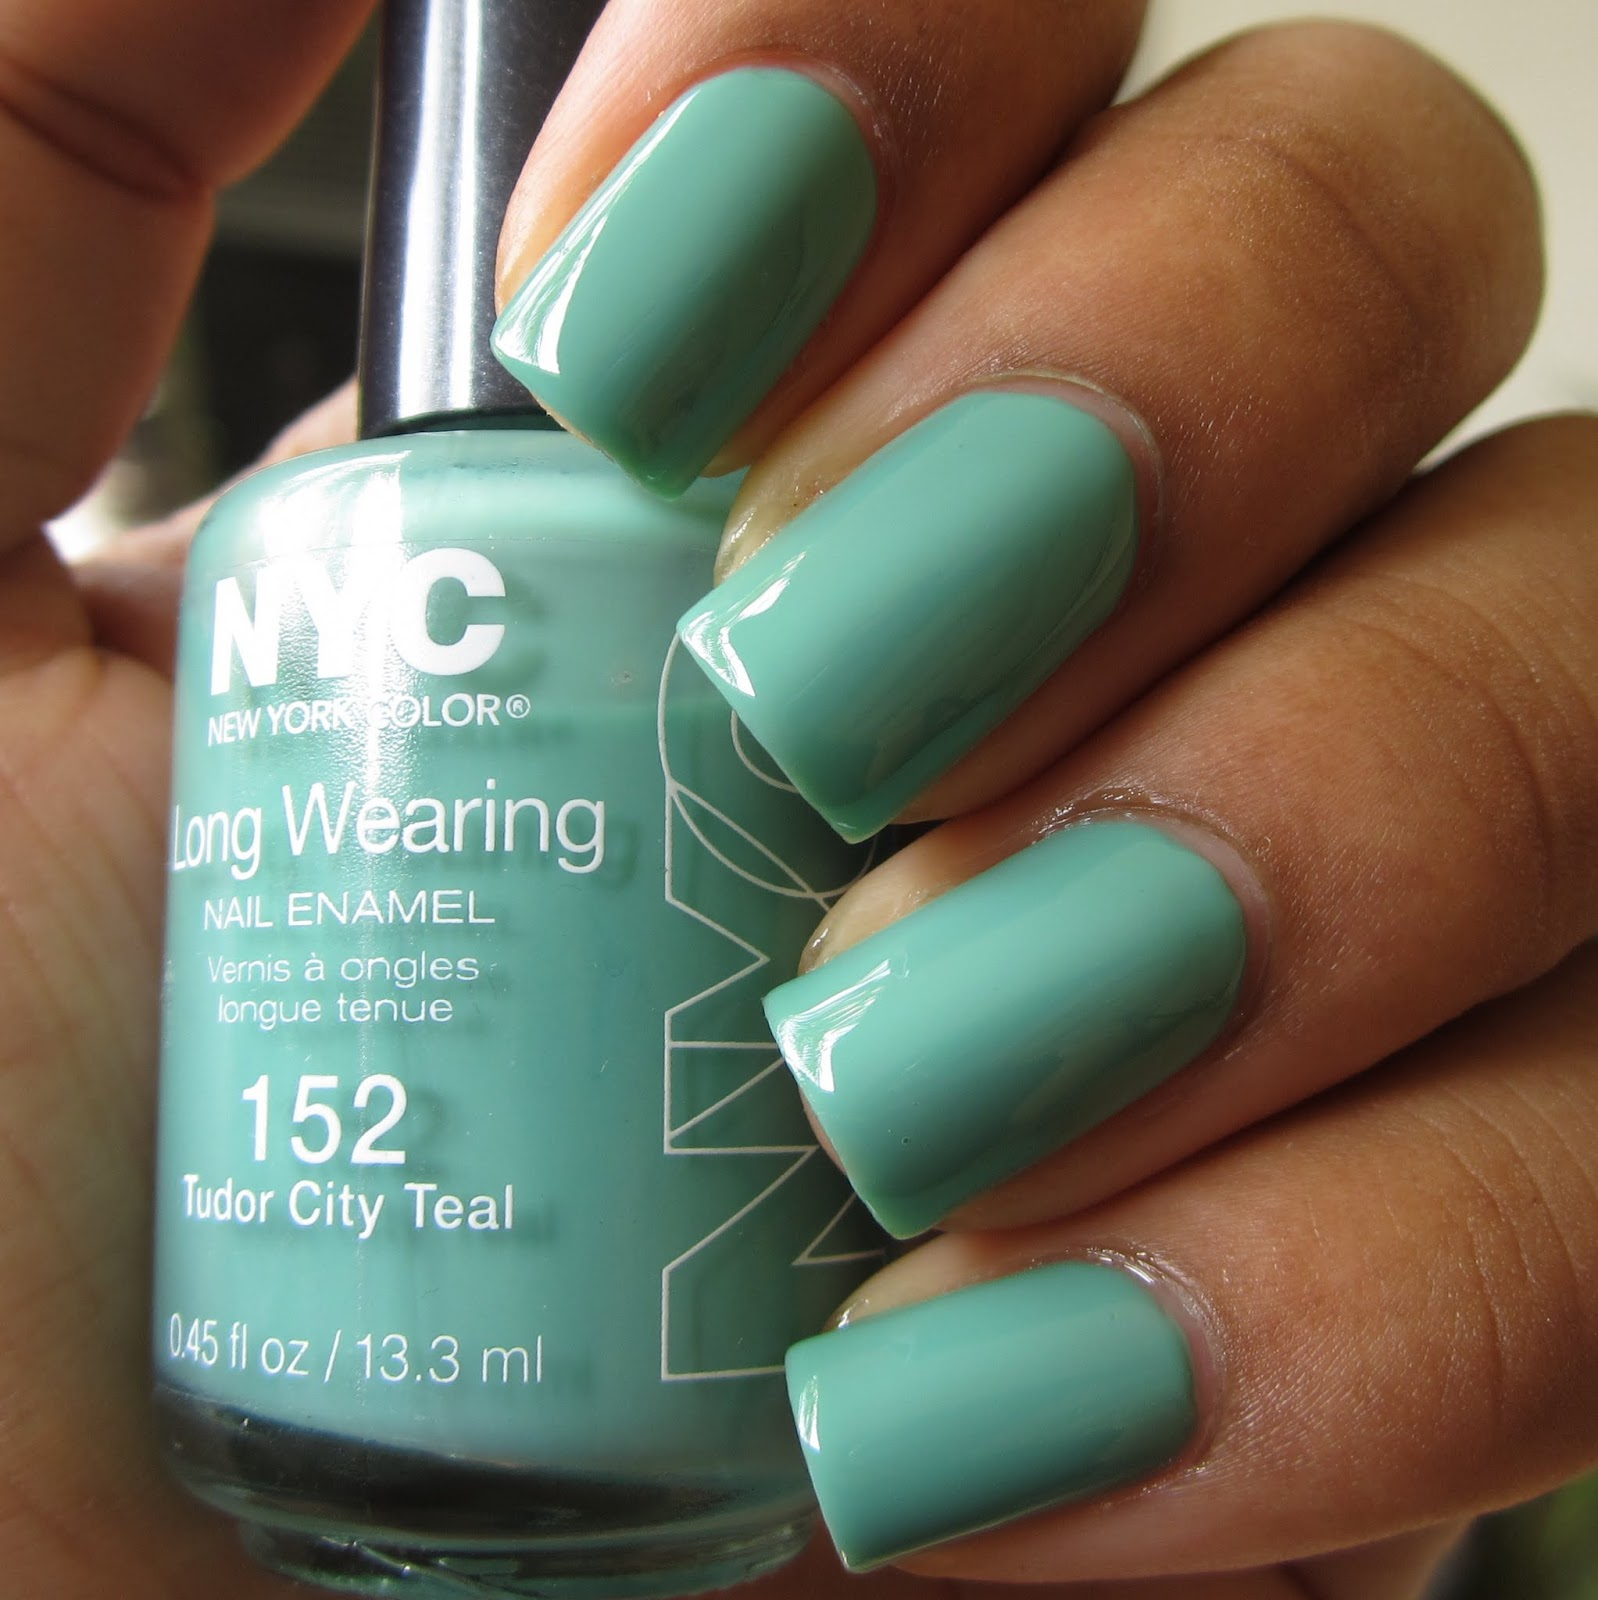 NYC Tudor City Teal nail polish swatch